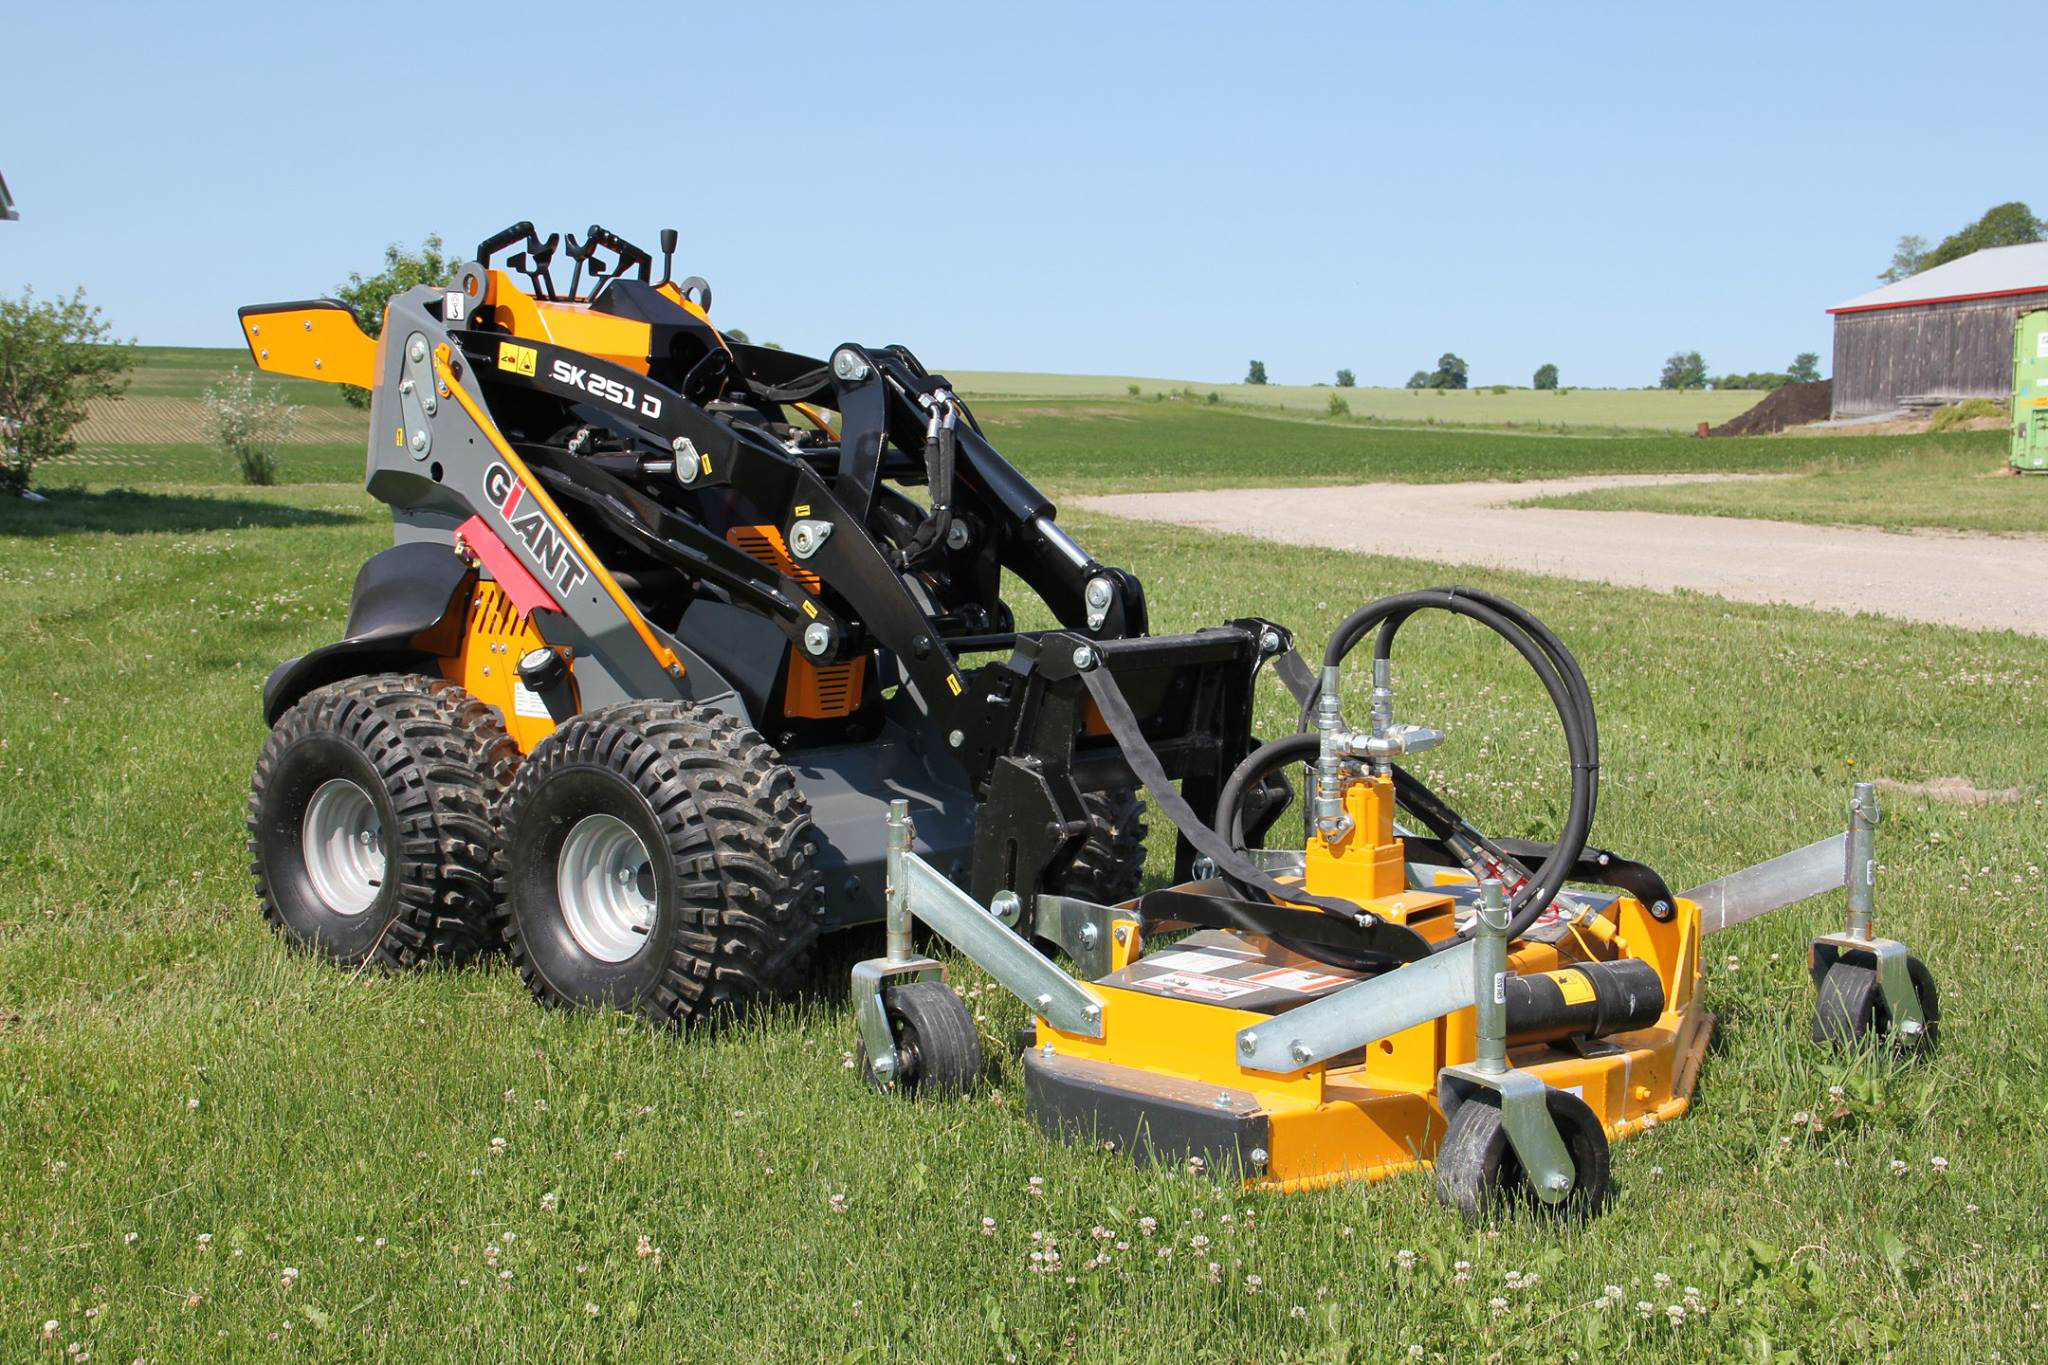 Mini Skid Steer : Dutch compact equipment brand giant will make north